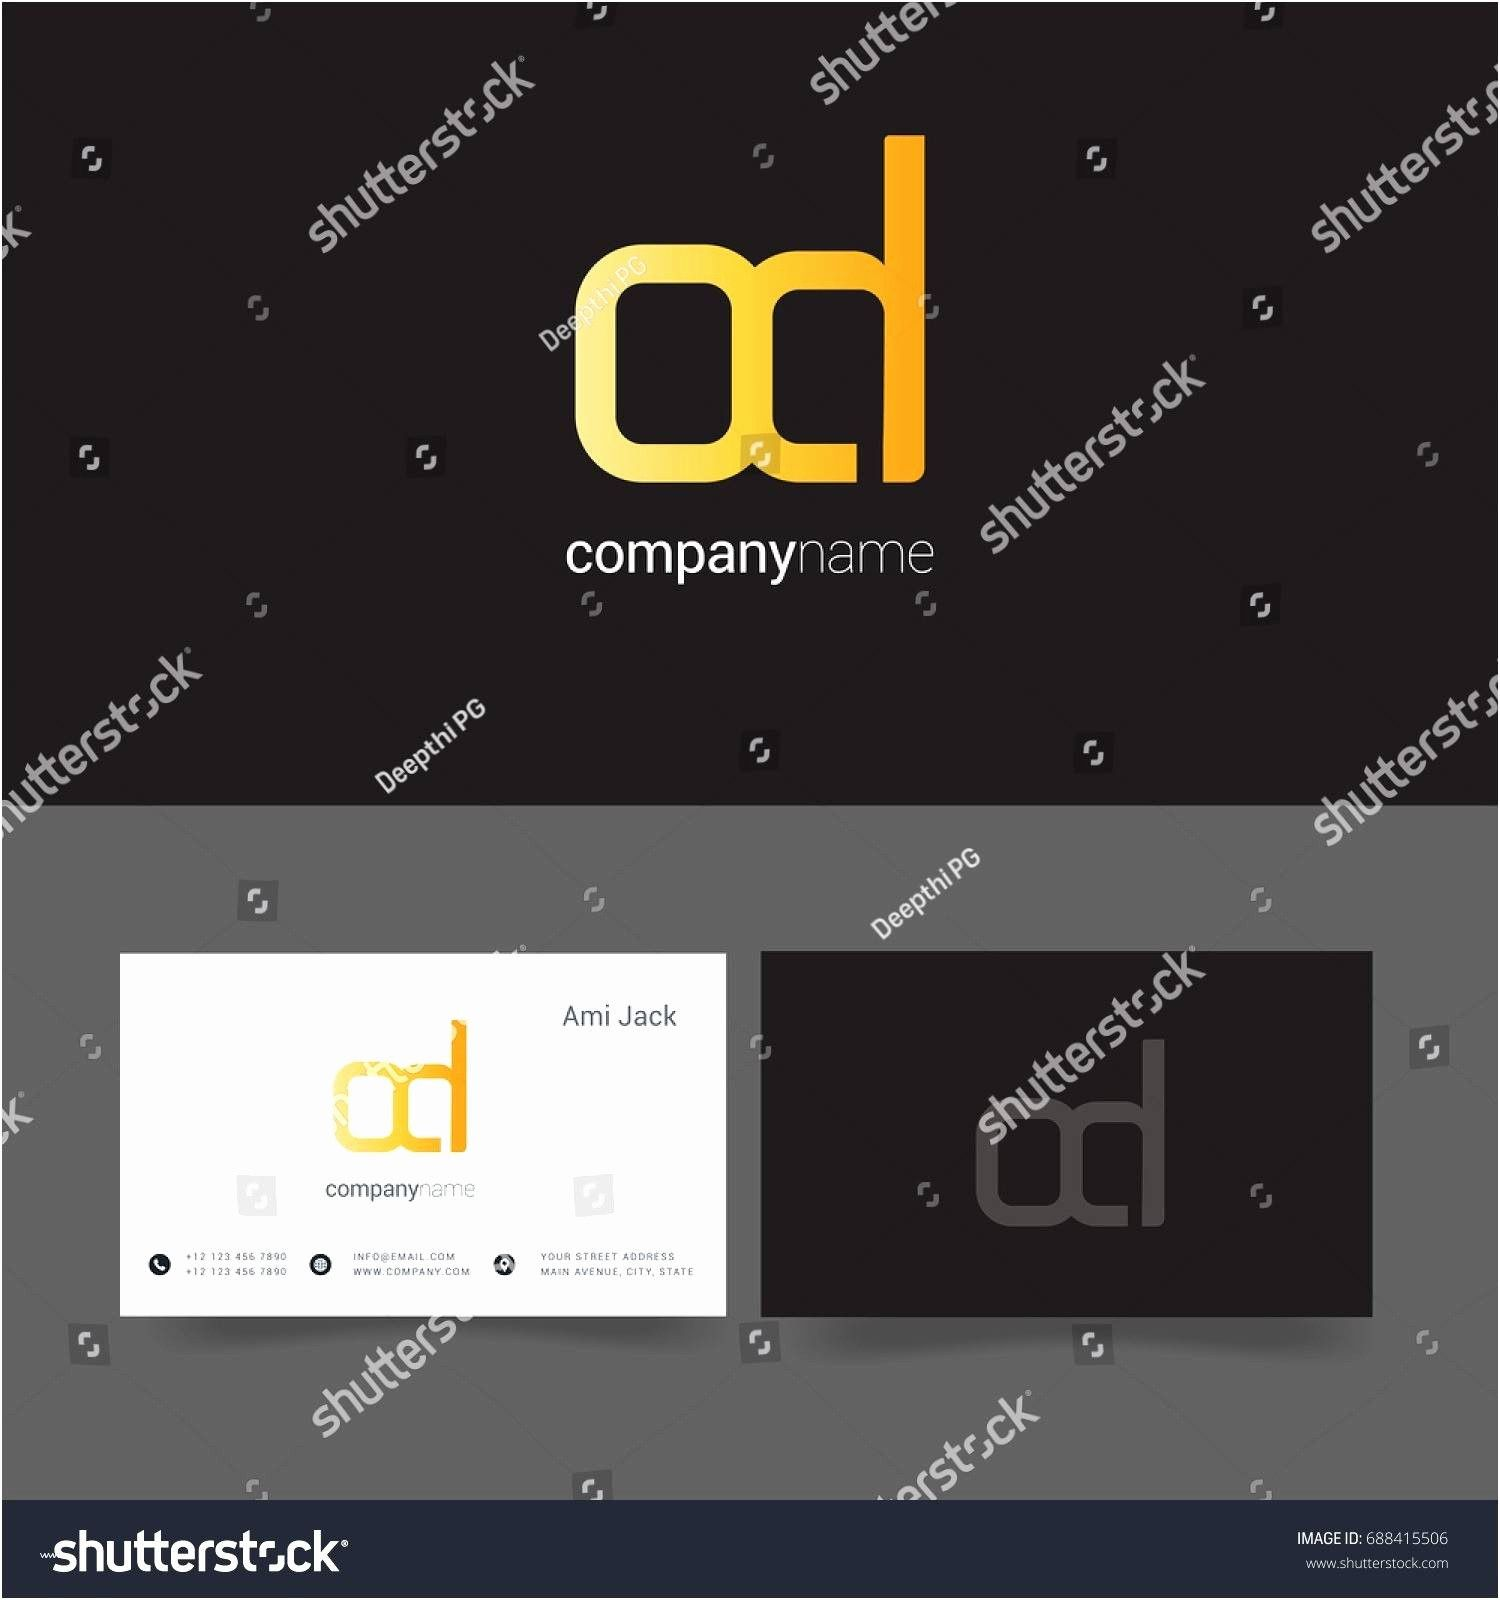 Newcomplete Qsl Card Template Photoshop Qslcard Qslcardprint Qslcardsatellit Qslcardsat Sample Business Cards Business Cards Layout Download Business Card